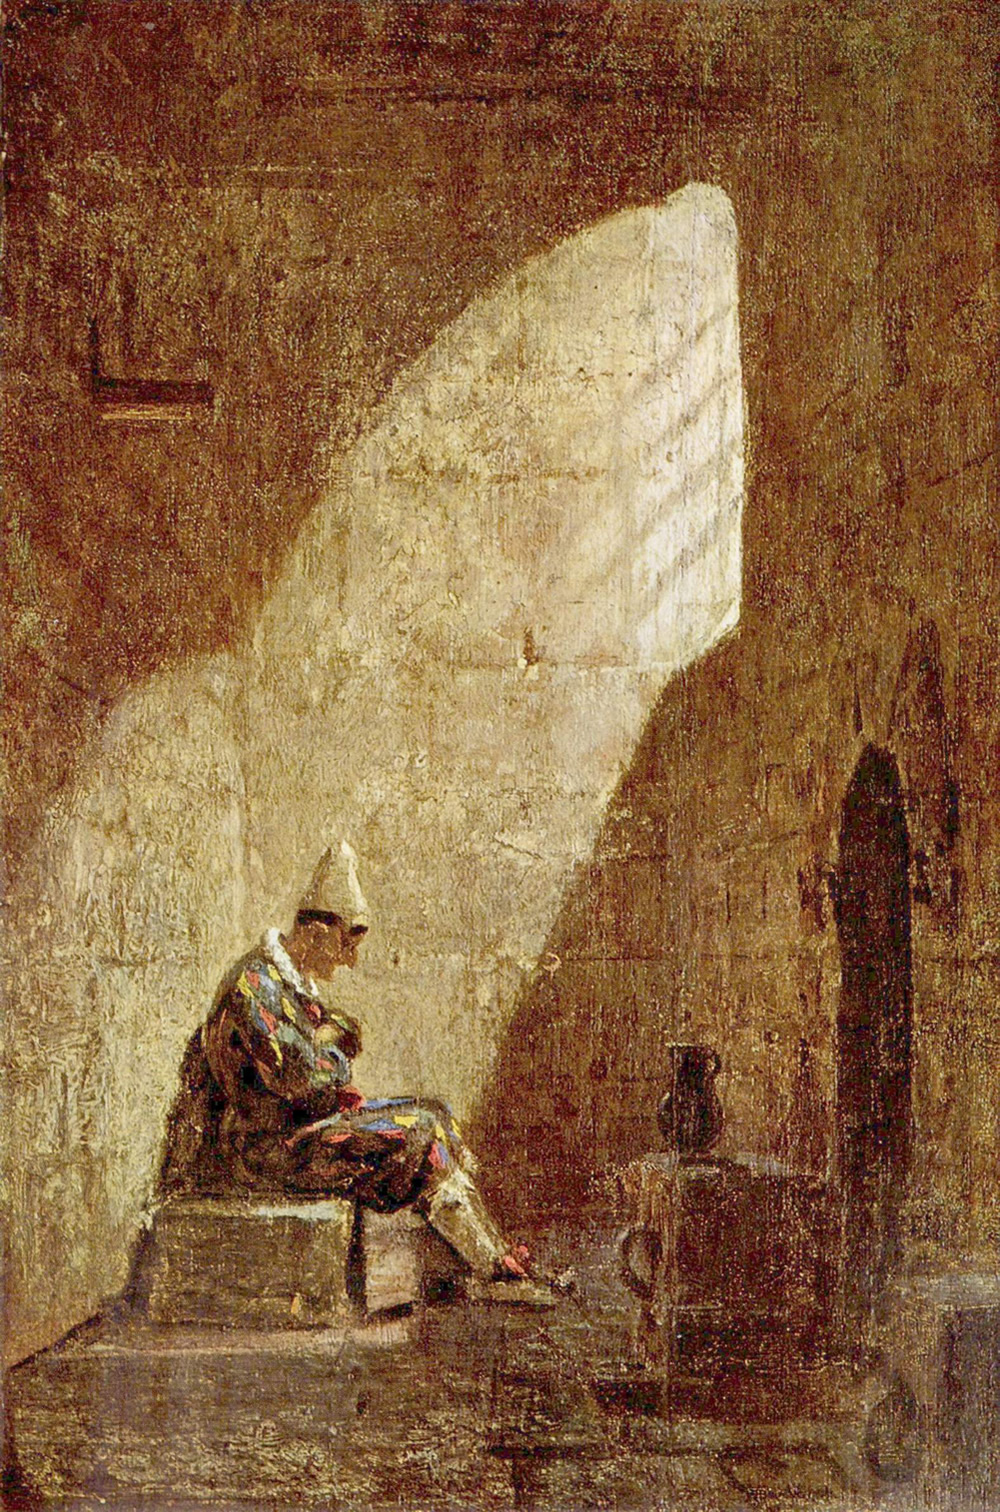 Carl Spitzweg, Ash Wednesday, Public Domain